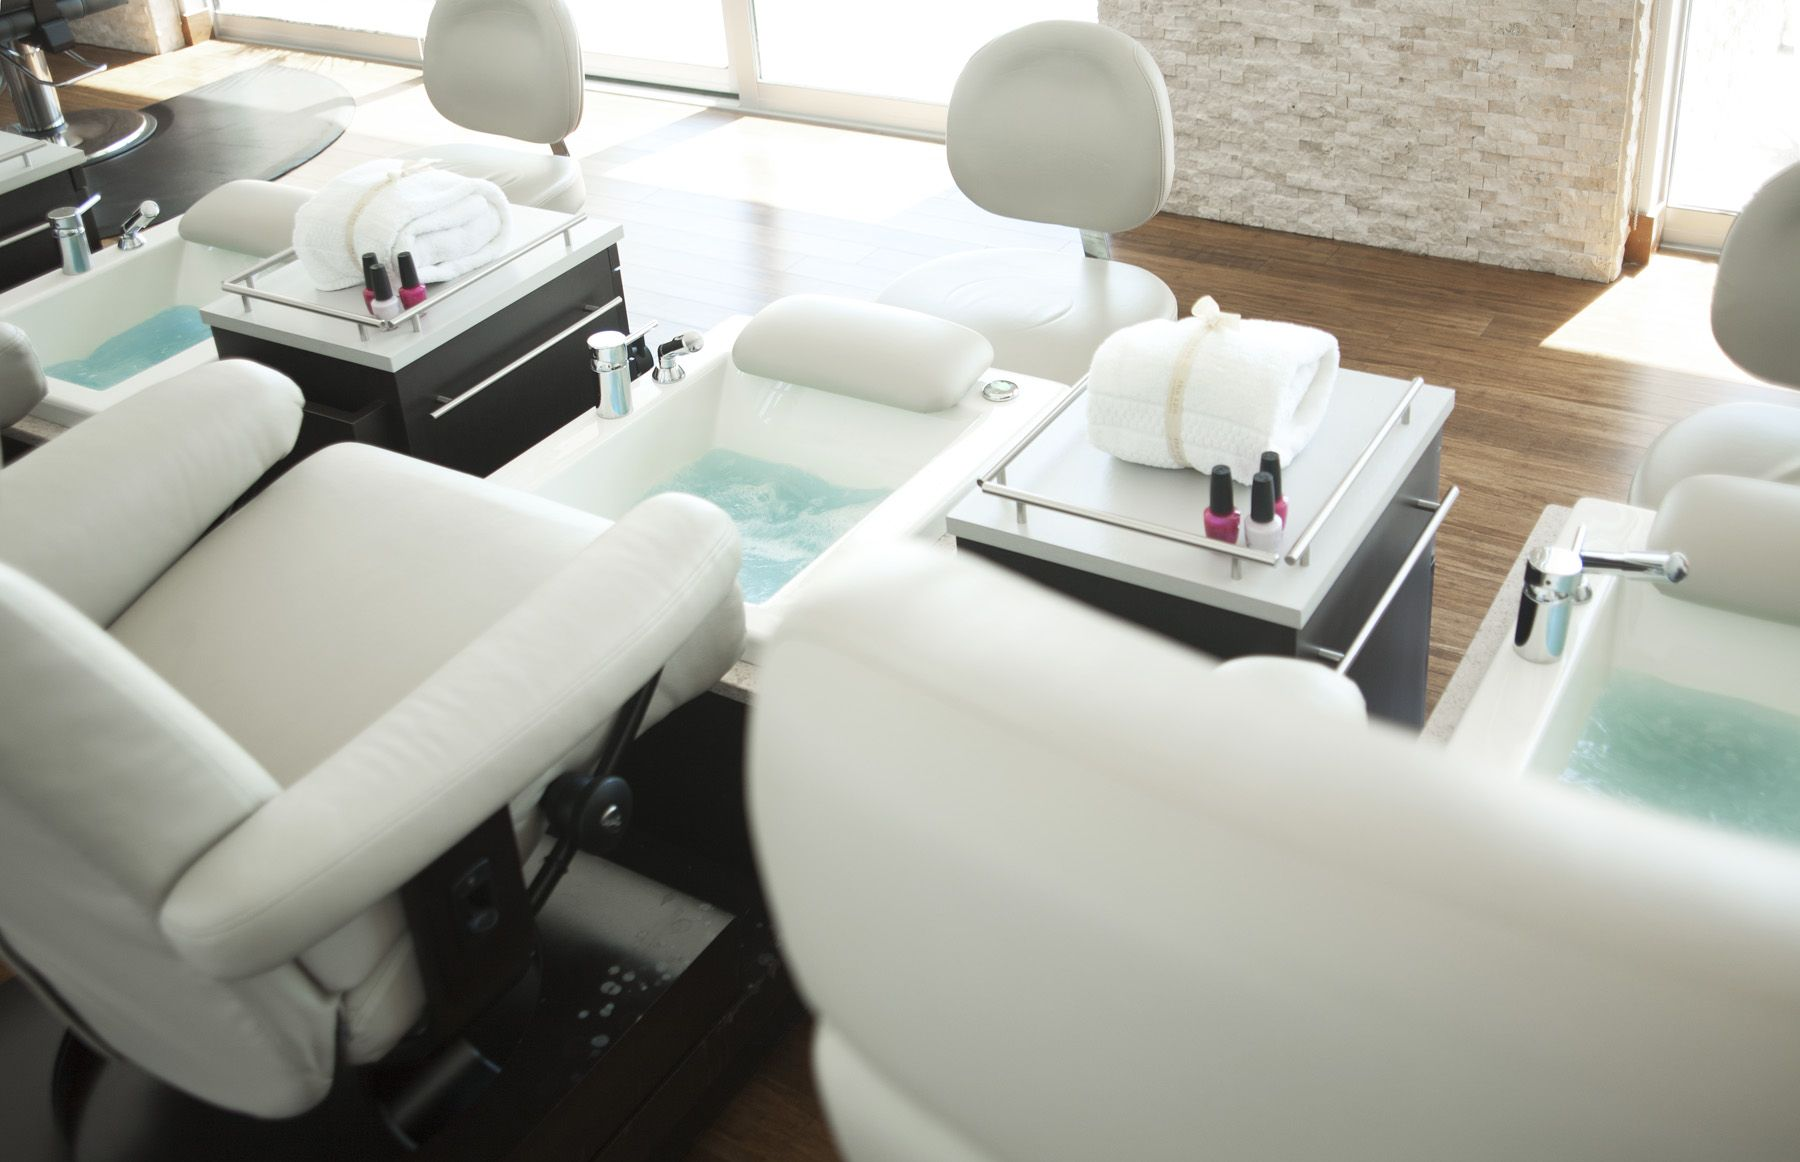 Pedicure chairs at the Spa Spa Pinterest